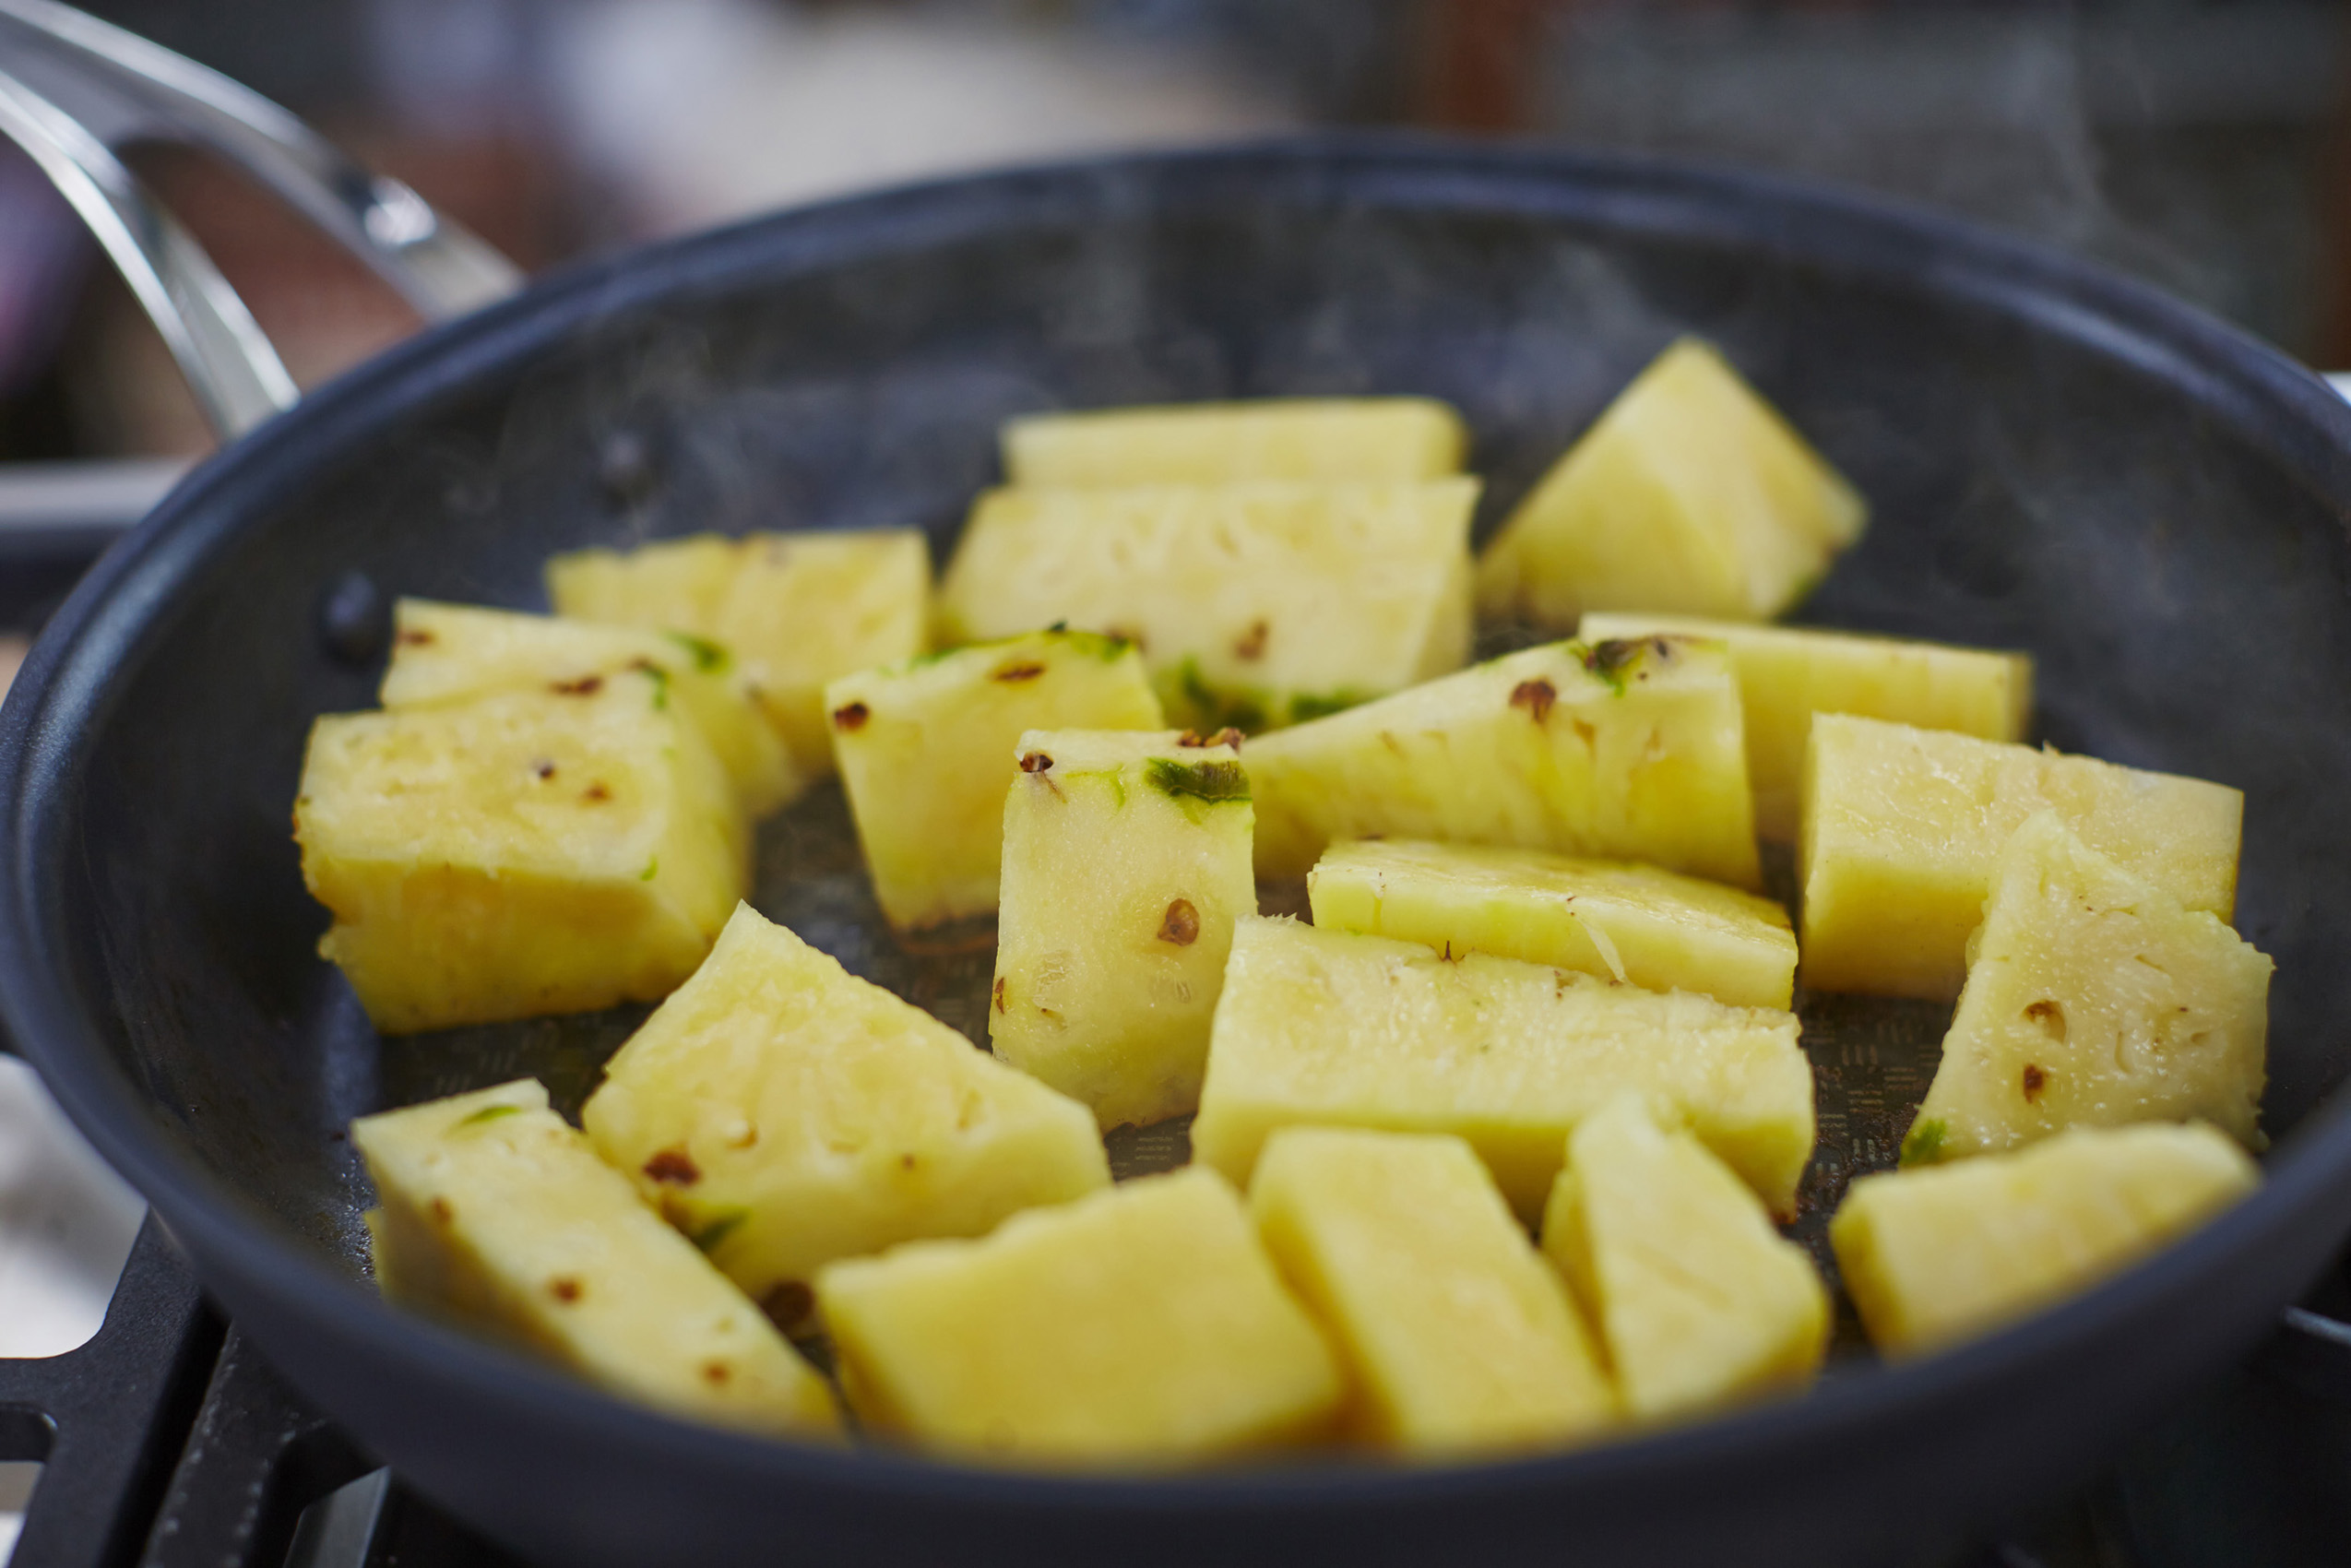 SteveRyan_Photographer_Ingredients_Produce_Vegetables_GrilledPineapple_20